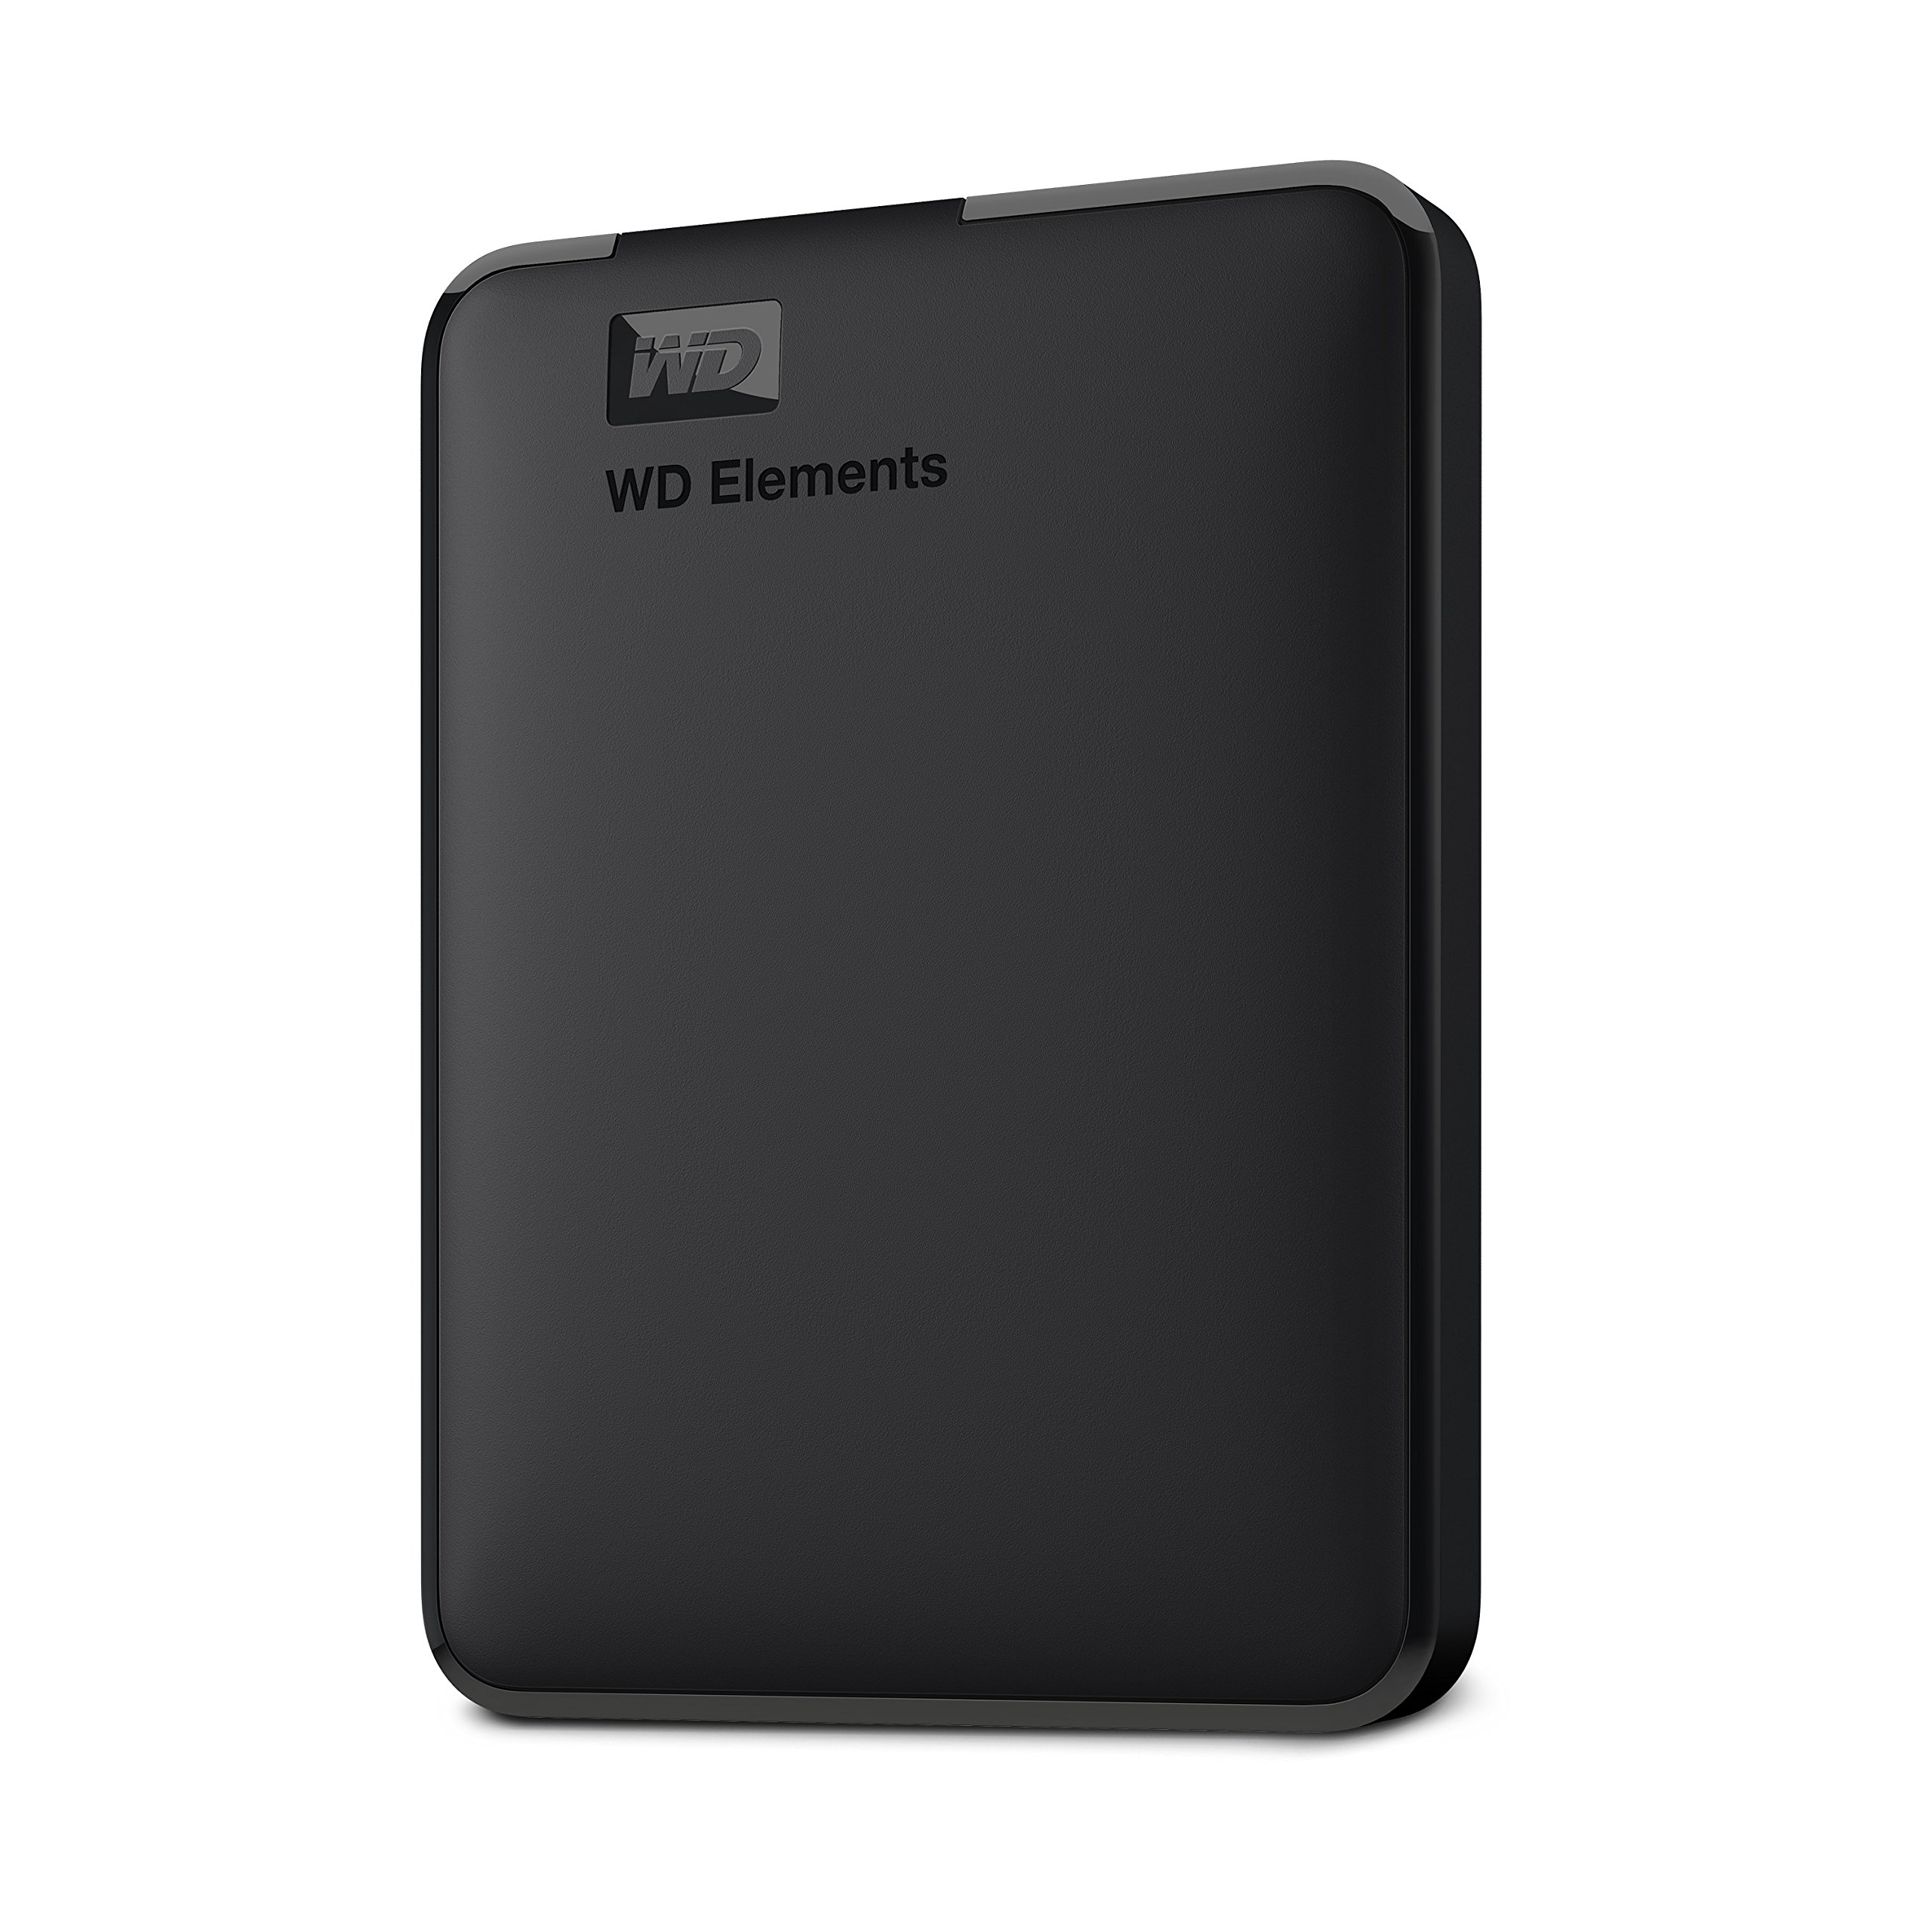 WD 3TB Elements Portable External Hard Drive - USB 3.0 - WDBU6Y0030BBK-WESN by Western Digital